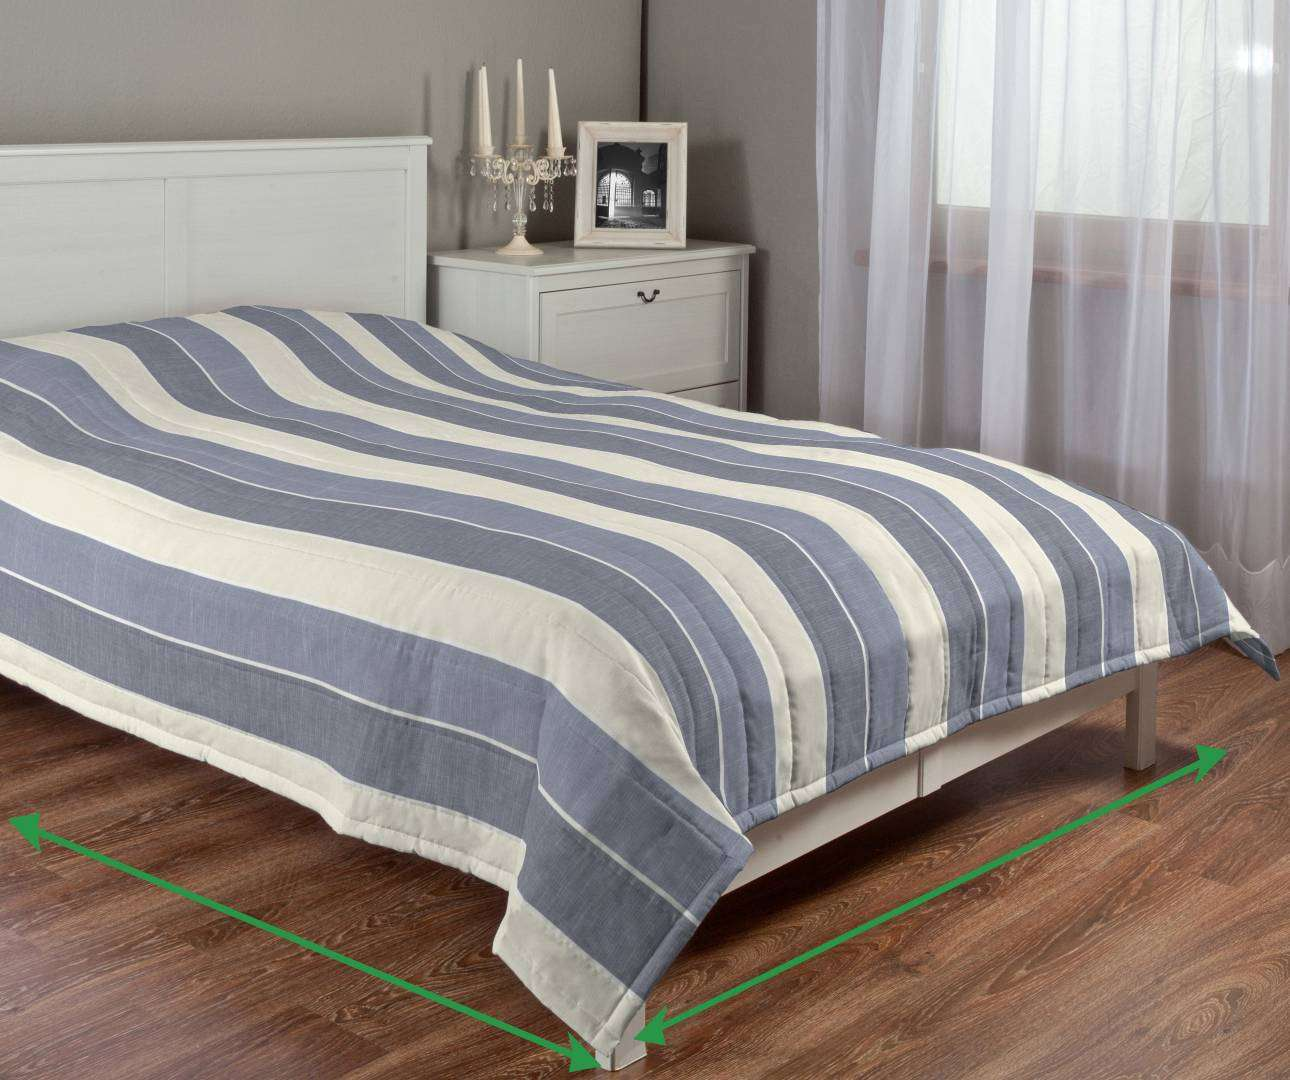 Quilted throw (vertical quilt pattern) in collection Cardiff, fabric: 136-27